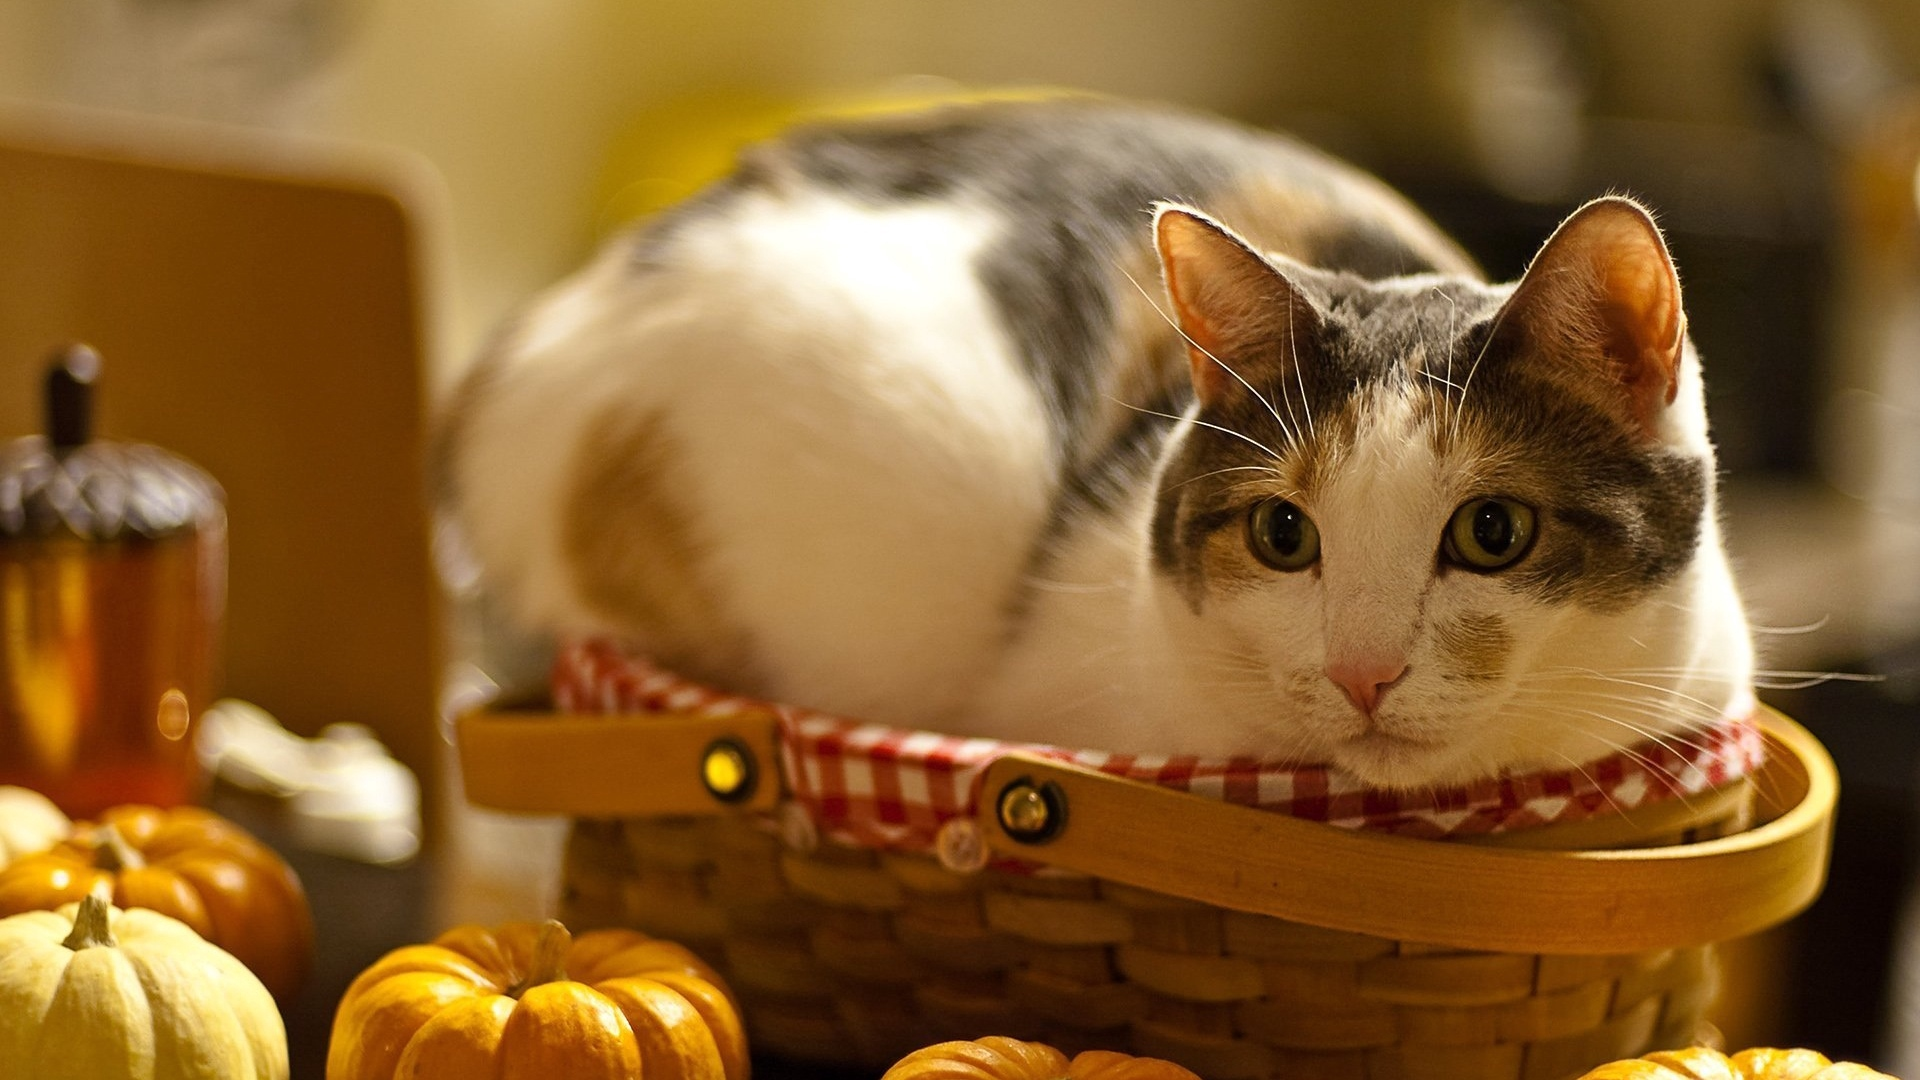 cute cat photos hd for mobile 5